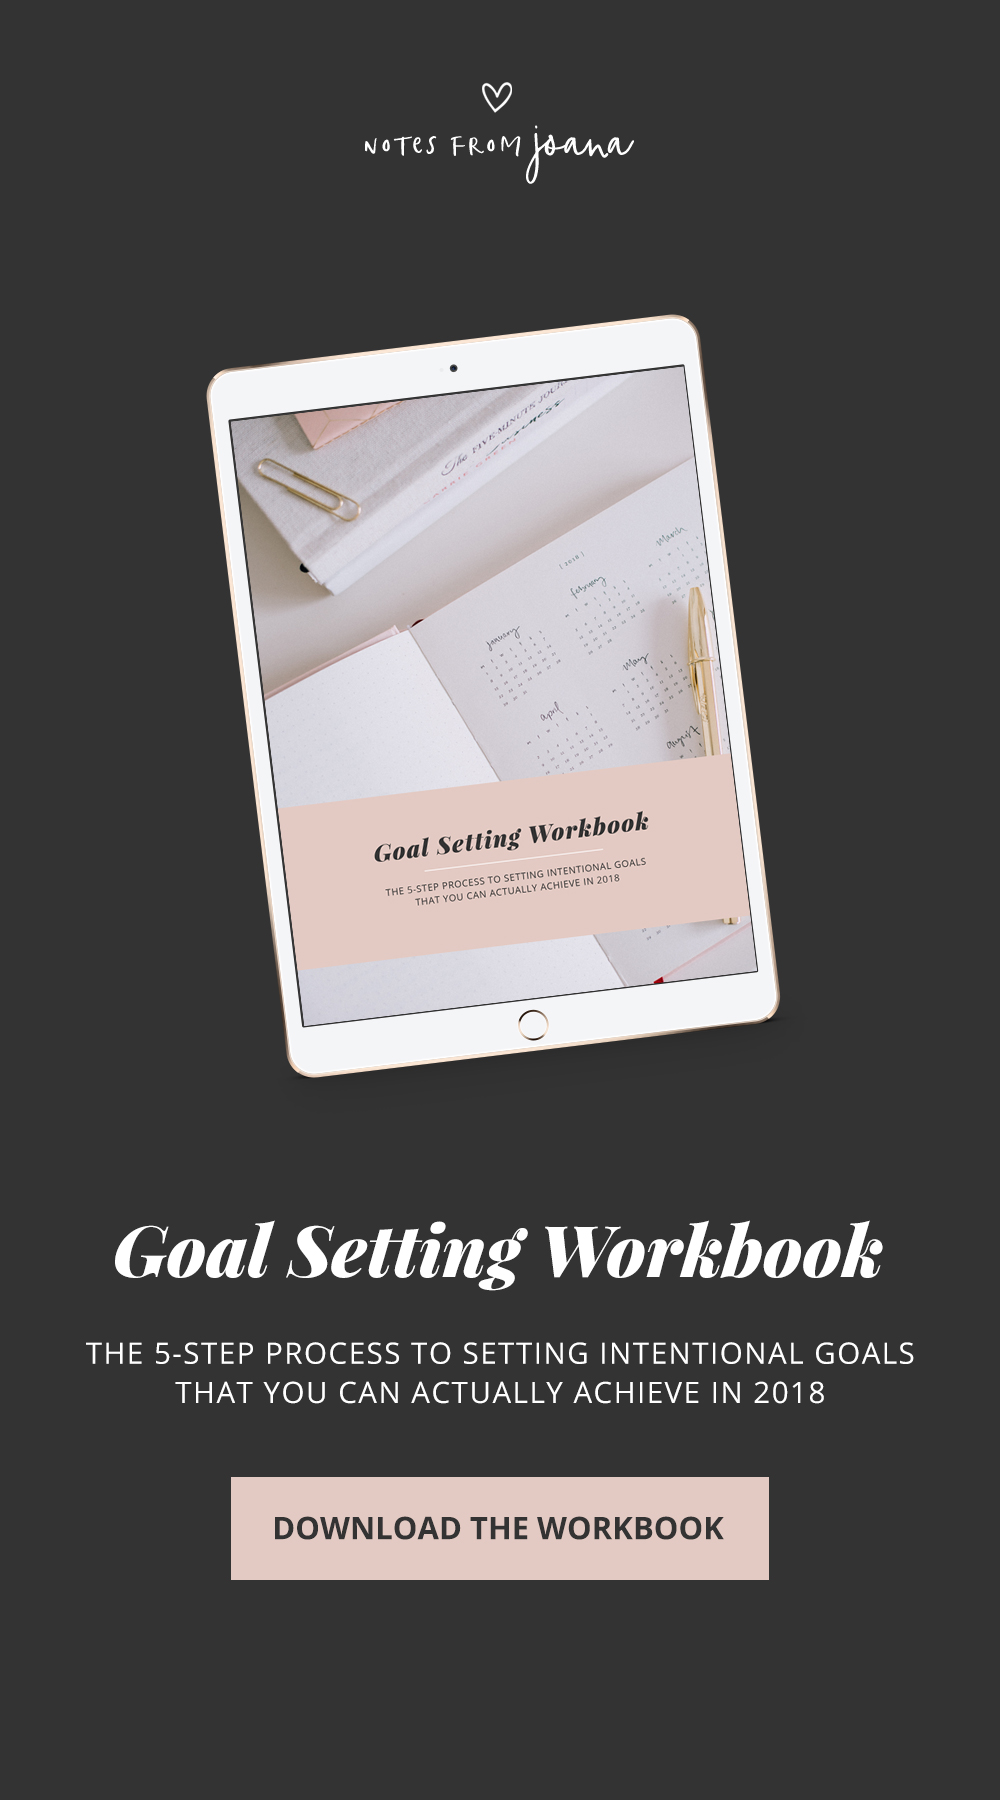 How To Set Intentional Goals That You Can Actually Achieve In 2018. New Year's Resolutions. Goal Setting. // Notes from Joana